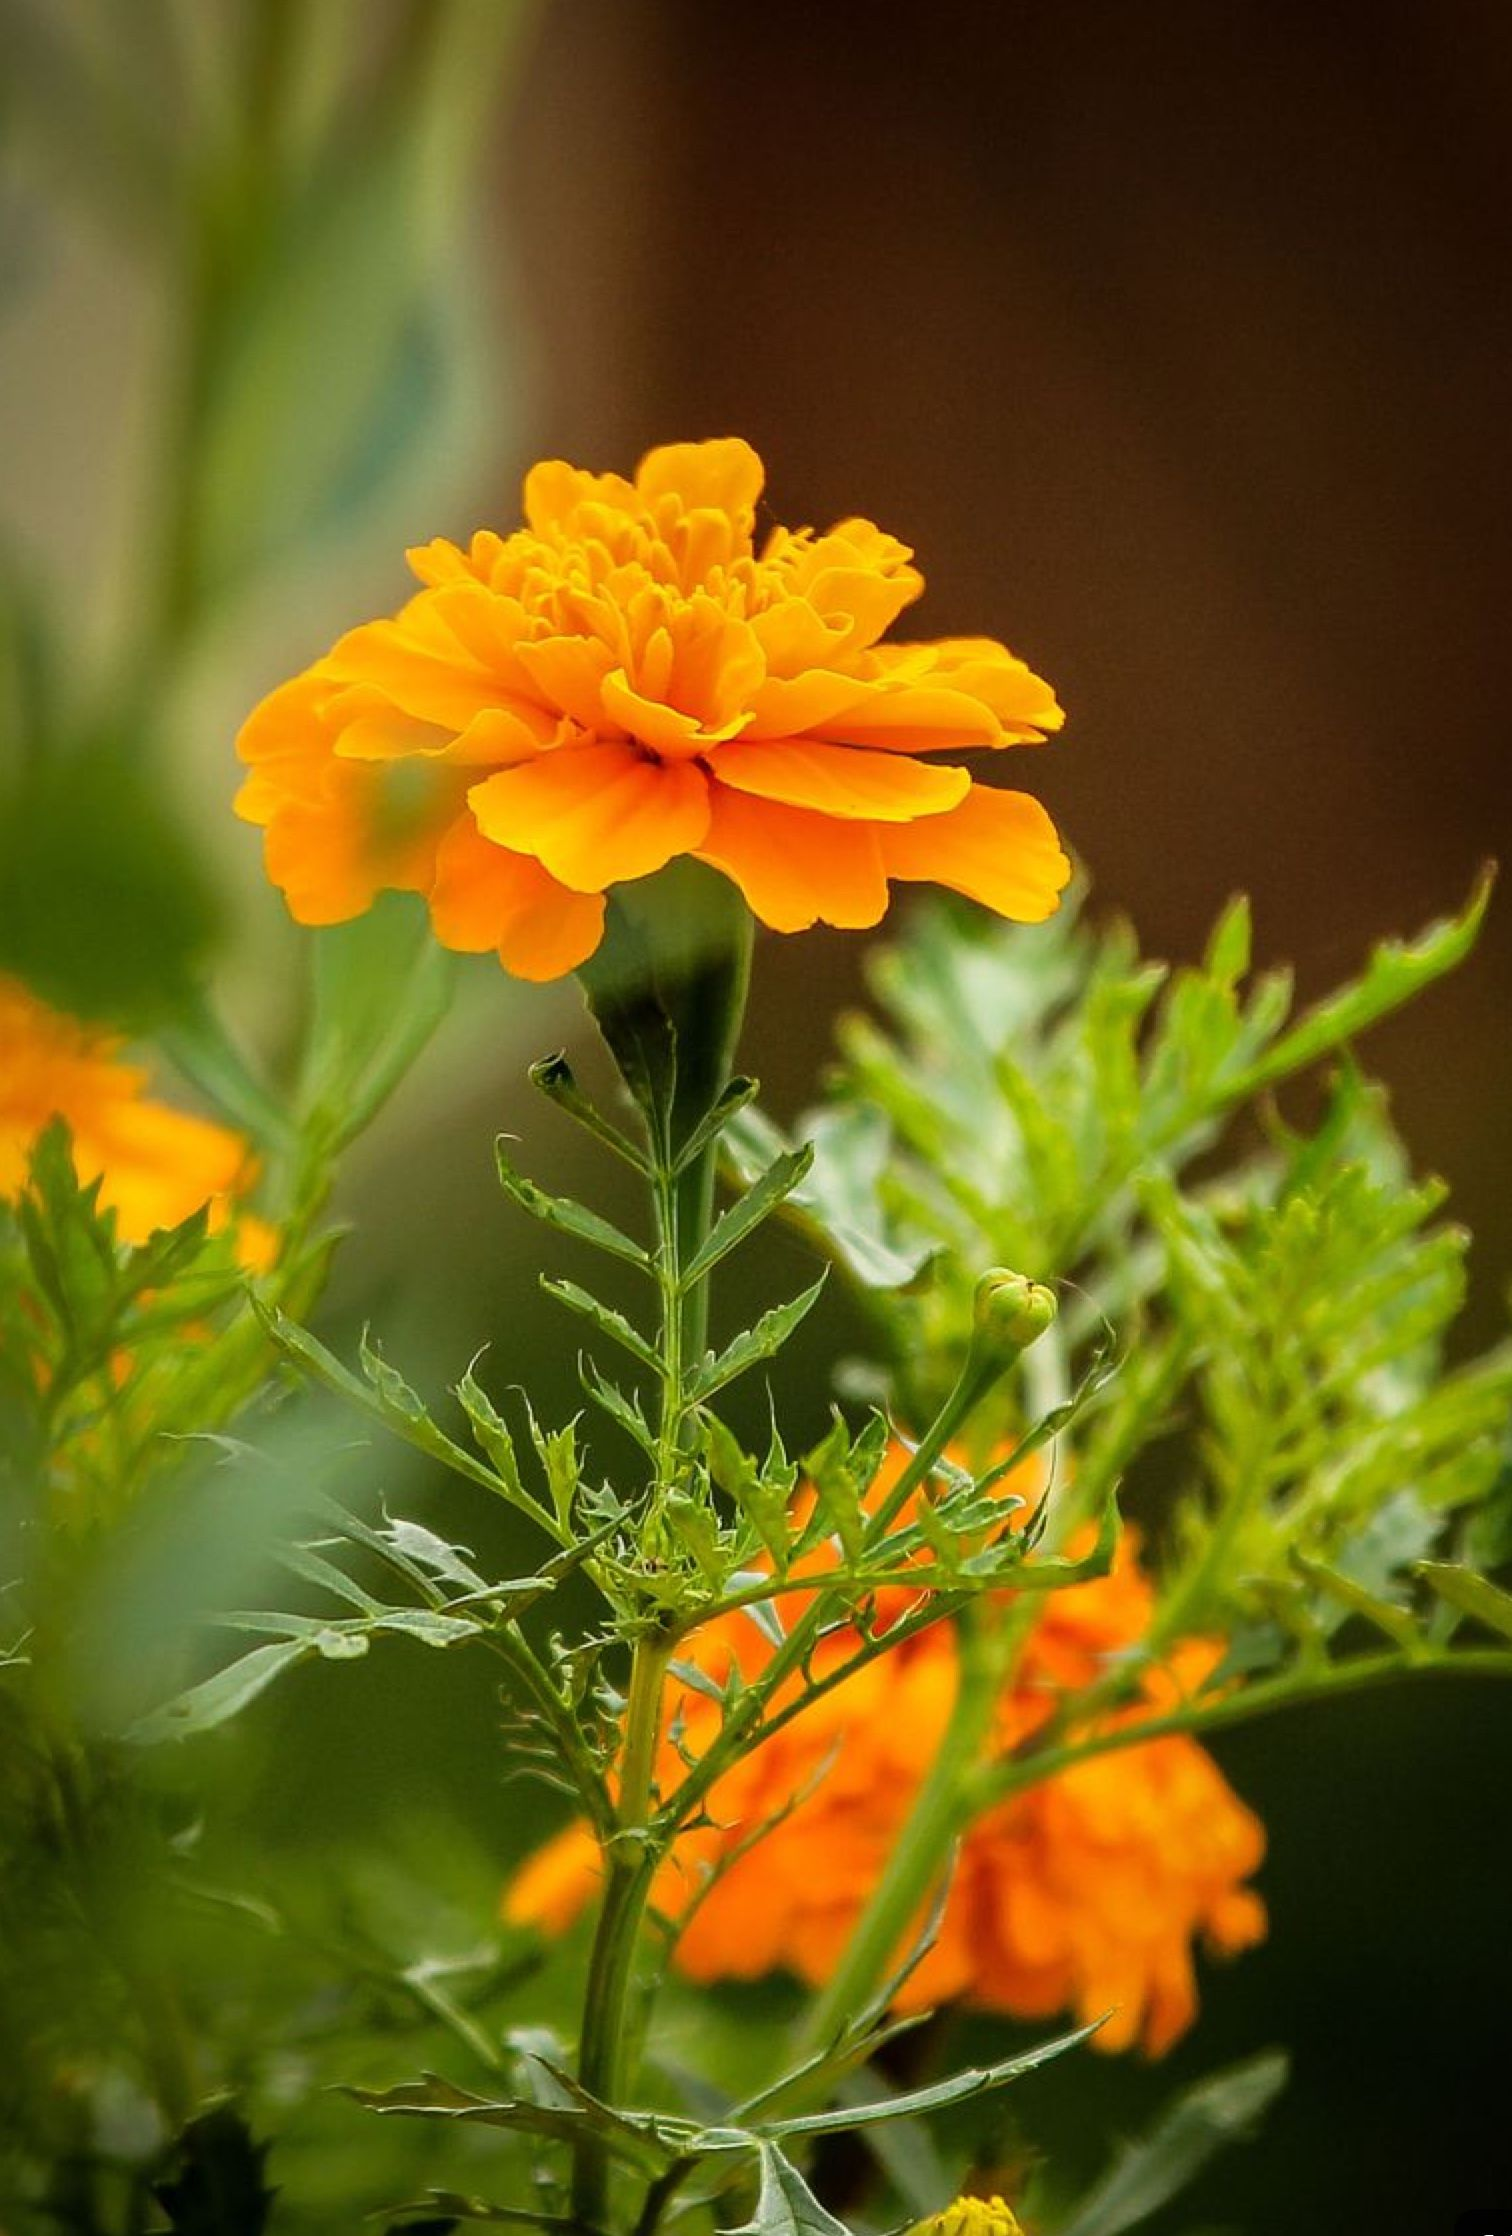 Pin by Gail Steven on Flower cottages Marigold flower